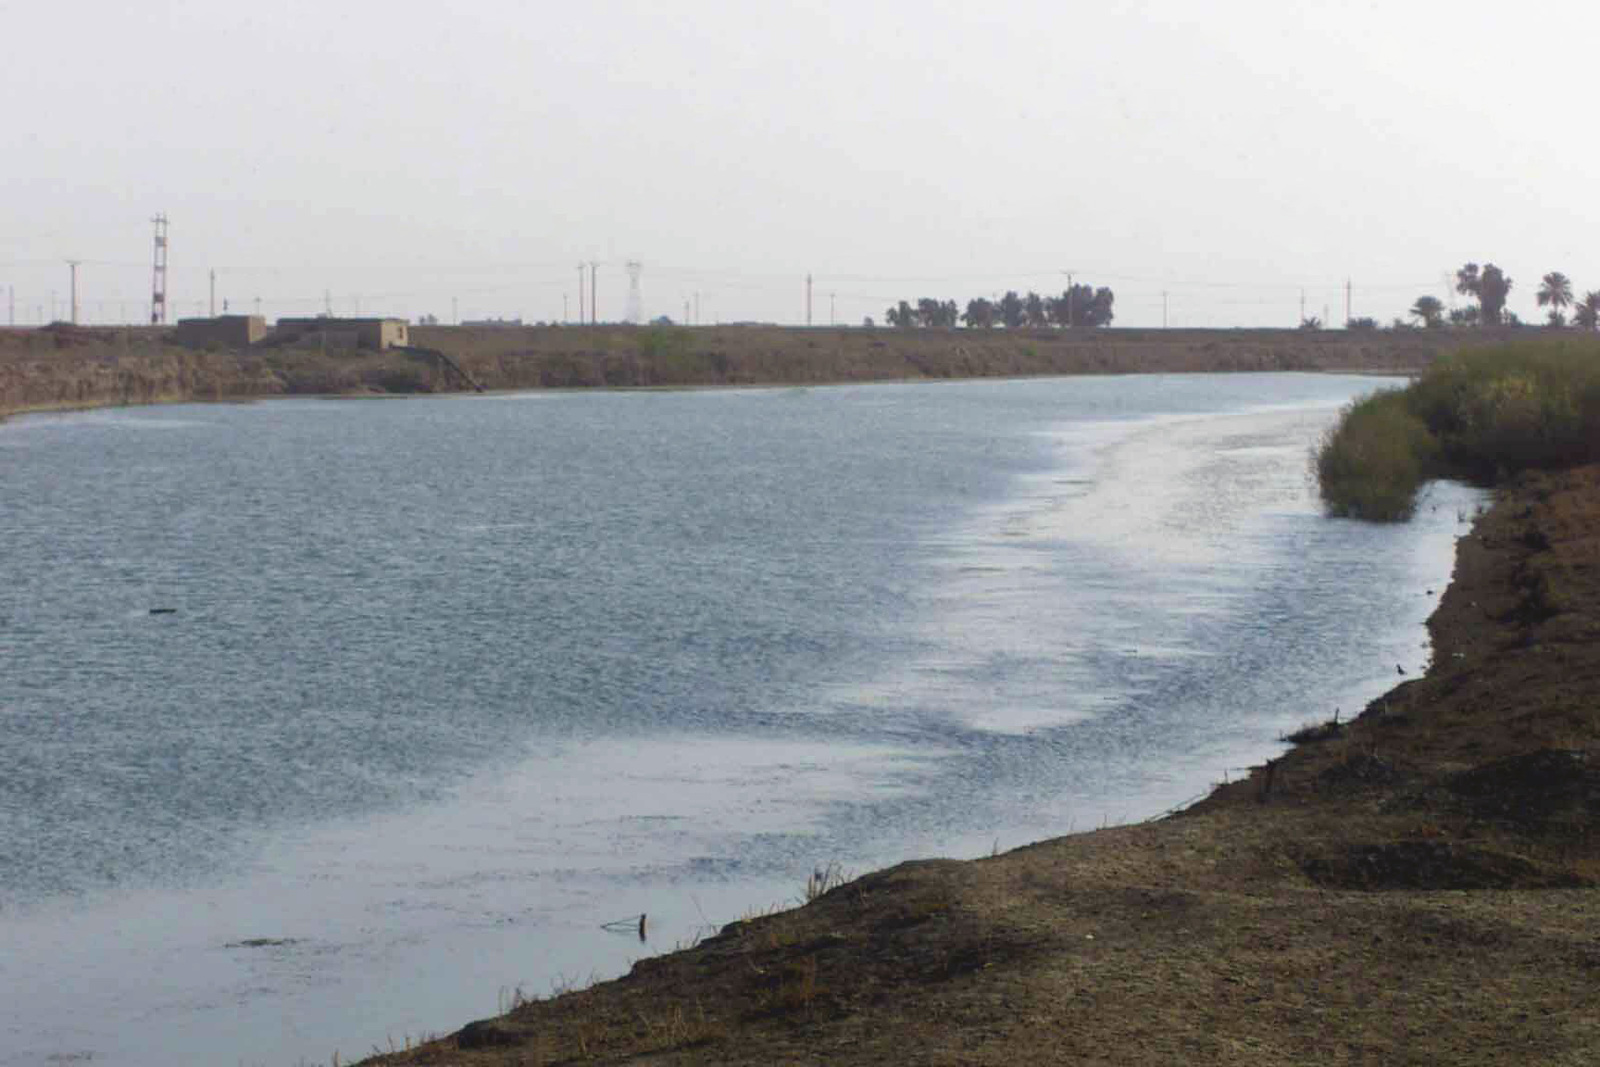 The Euphrates River as seen by the US Marine Corps (USMC